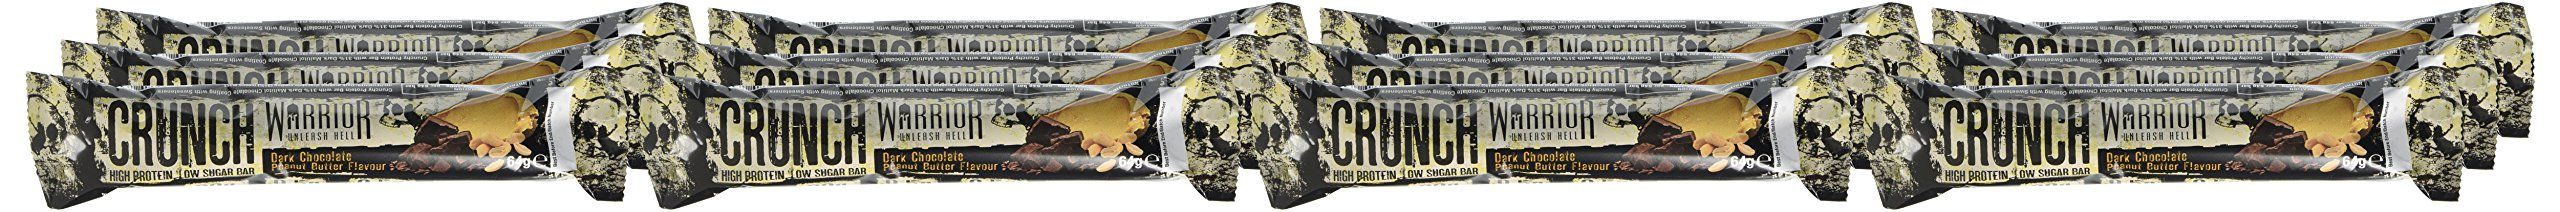 Warrior Crunch Protein Bar - High Protein Snack - Dark Chocolate Peanut Butter - 12x64g Bars 2